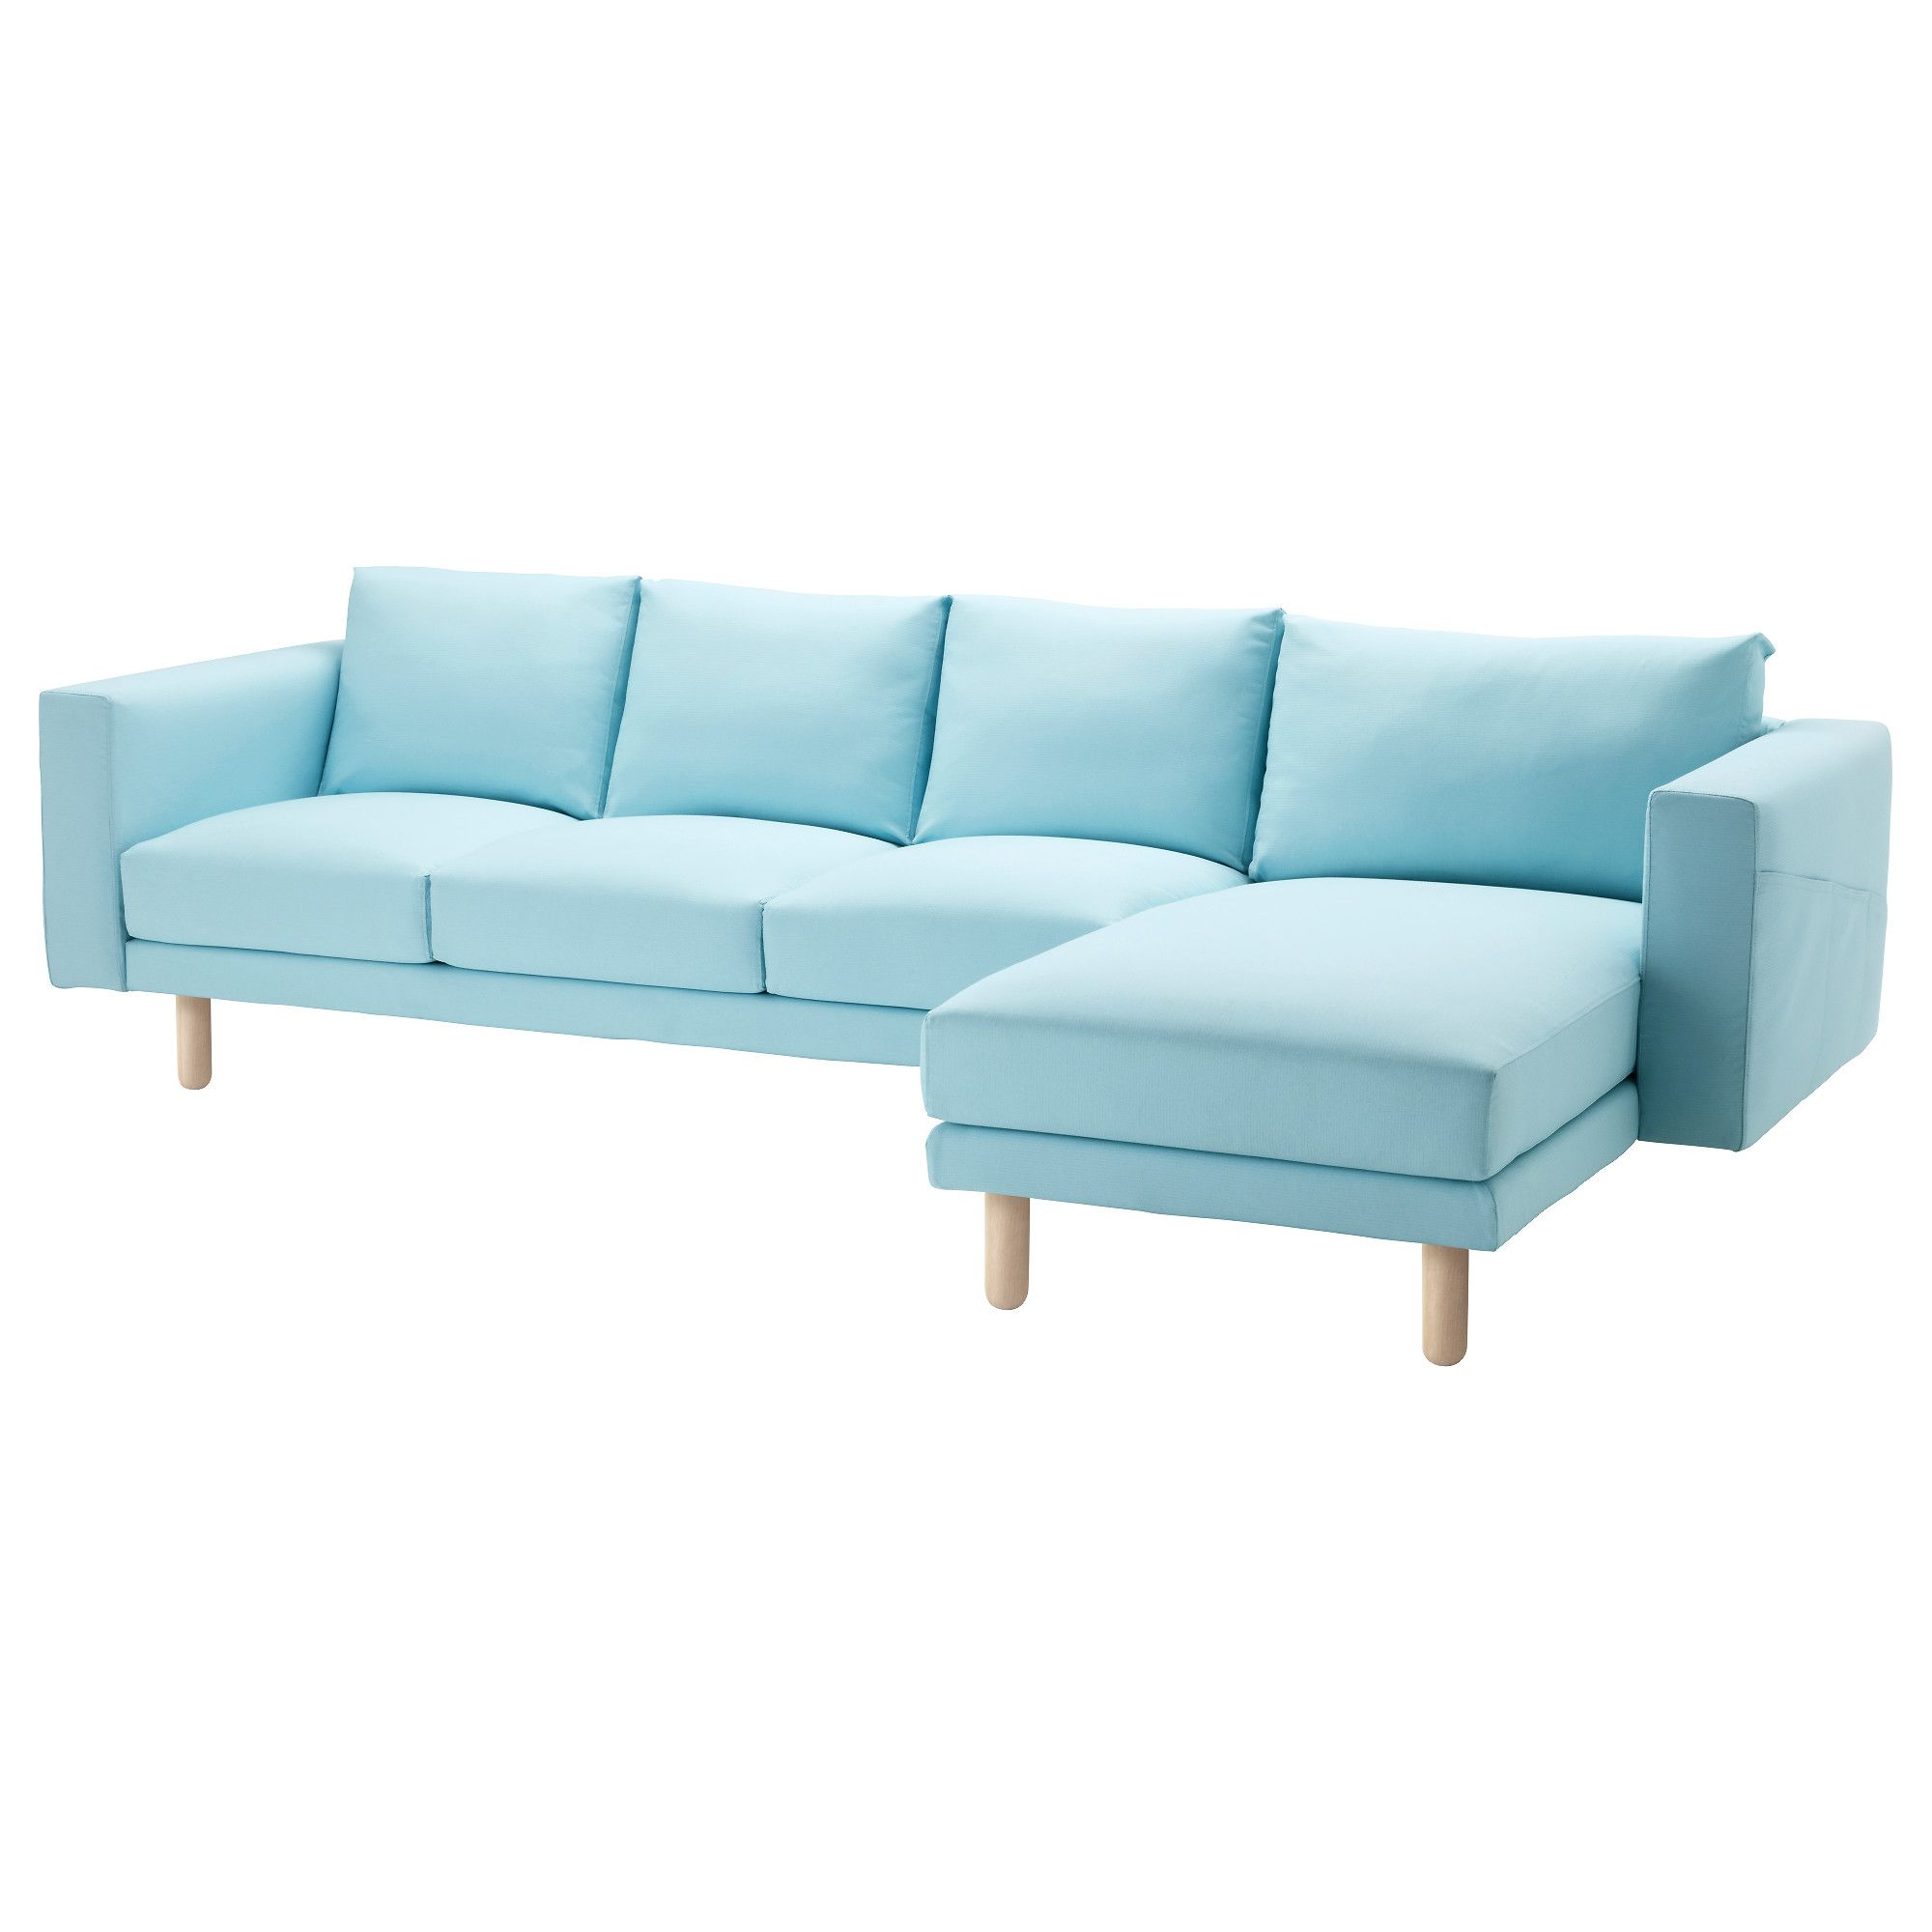 Pin by ladendirekt on Sofas & Couches | Norsborg, Light blue ...